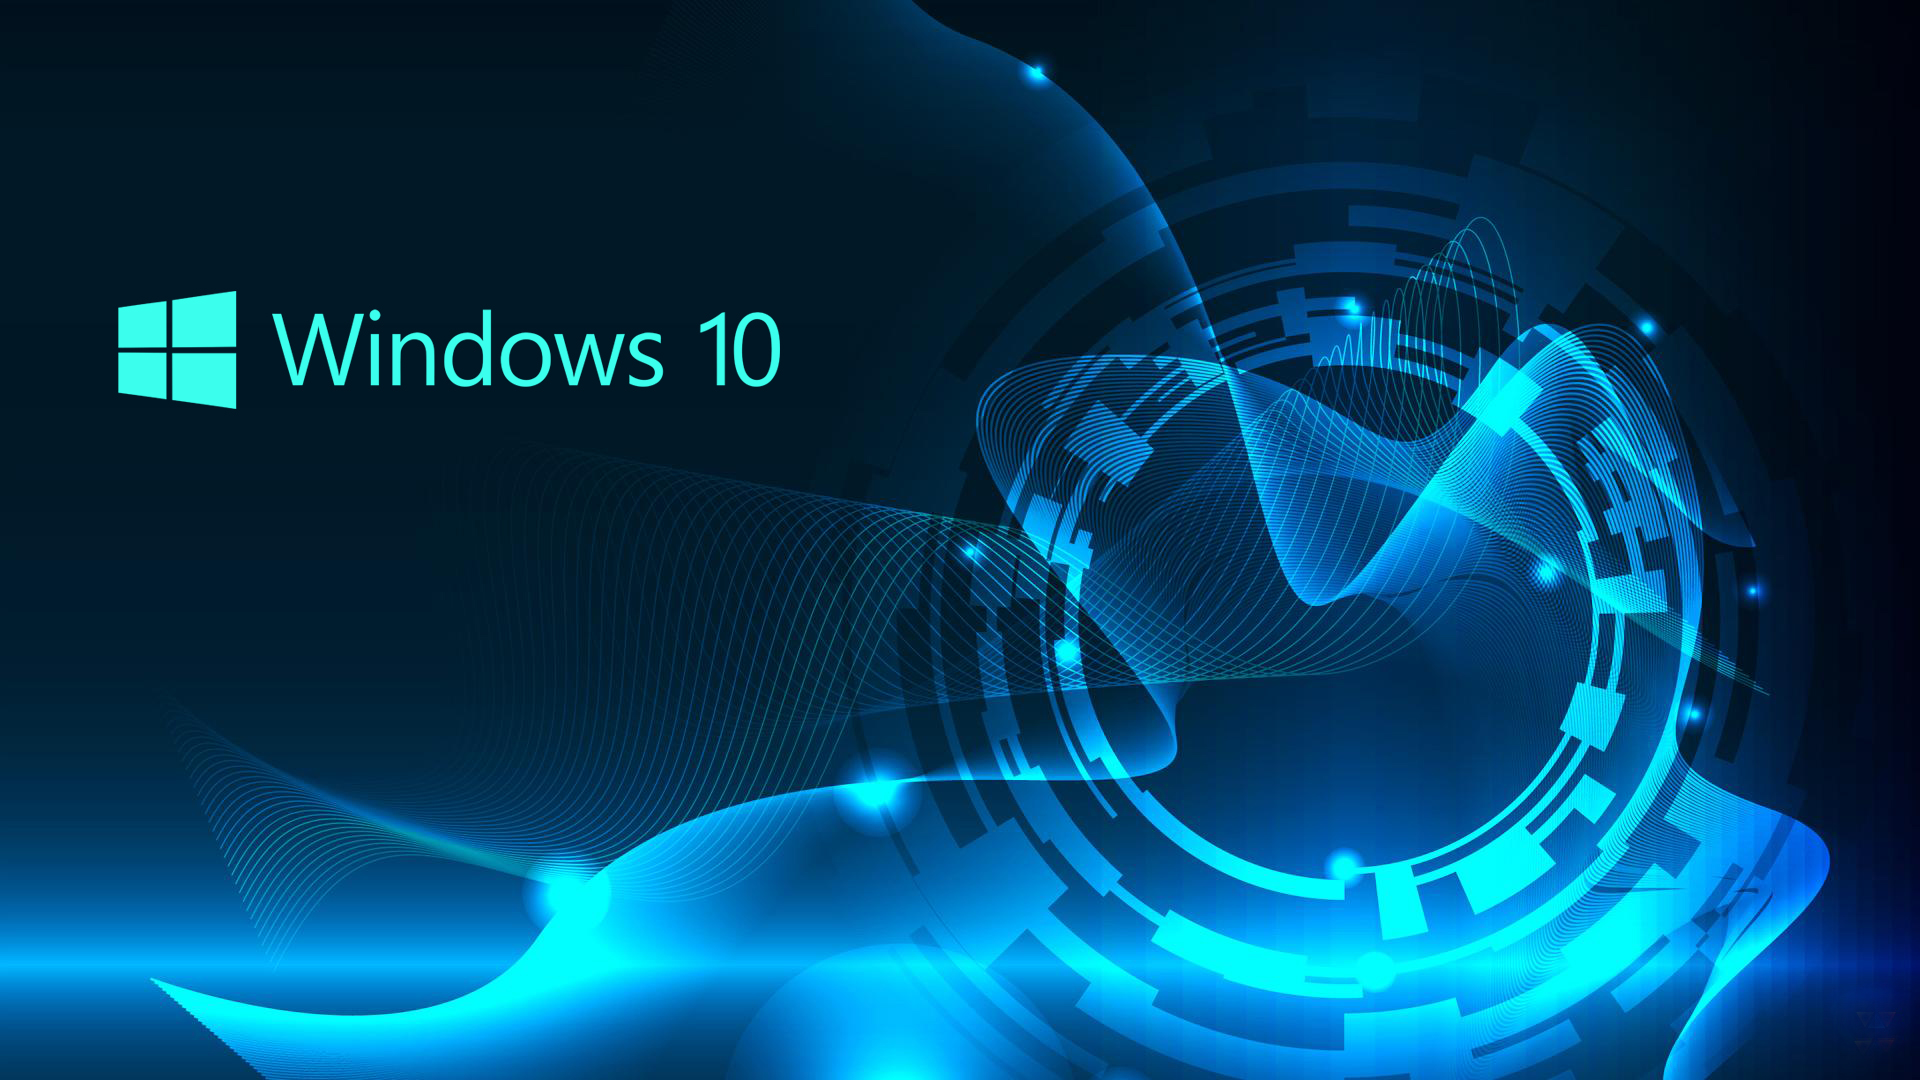 10 New Windows 8 Wallpaper Hd 3d For Desktop Full Hd 1920: Windows 10 Wallpaper HD 1080p Free Download